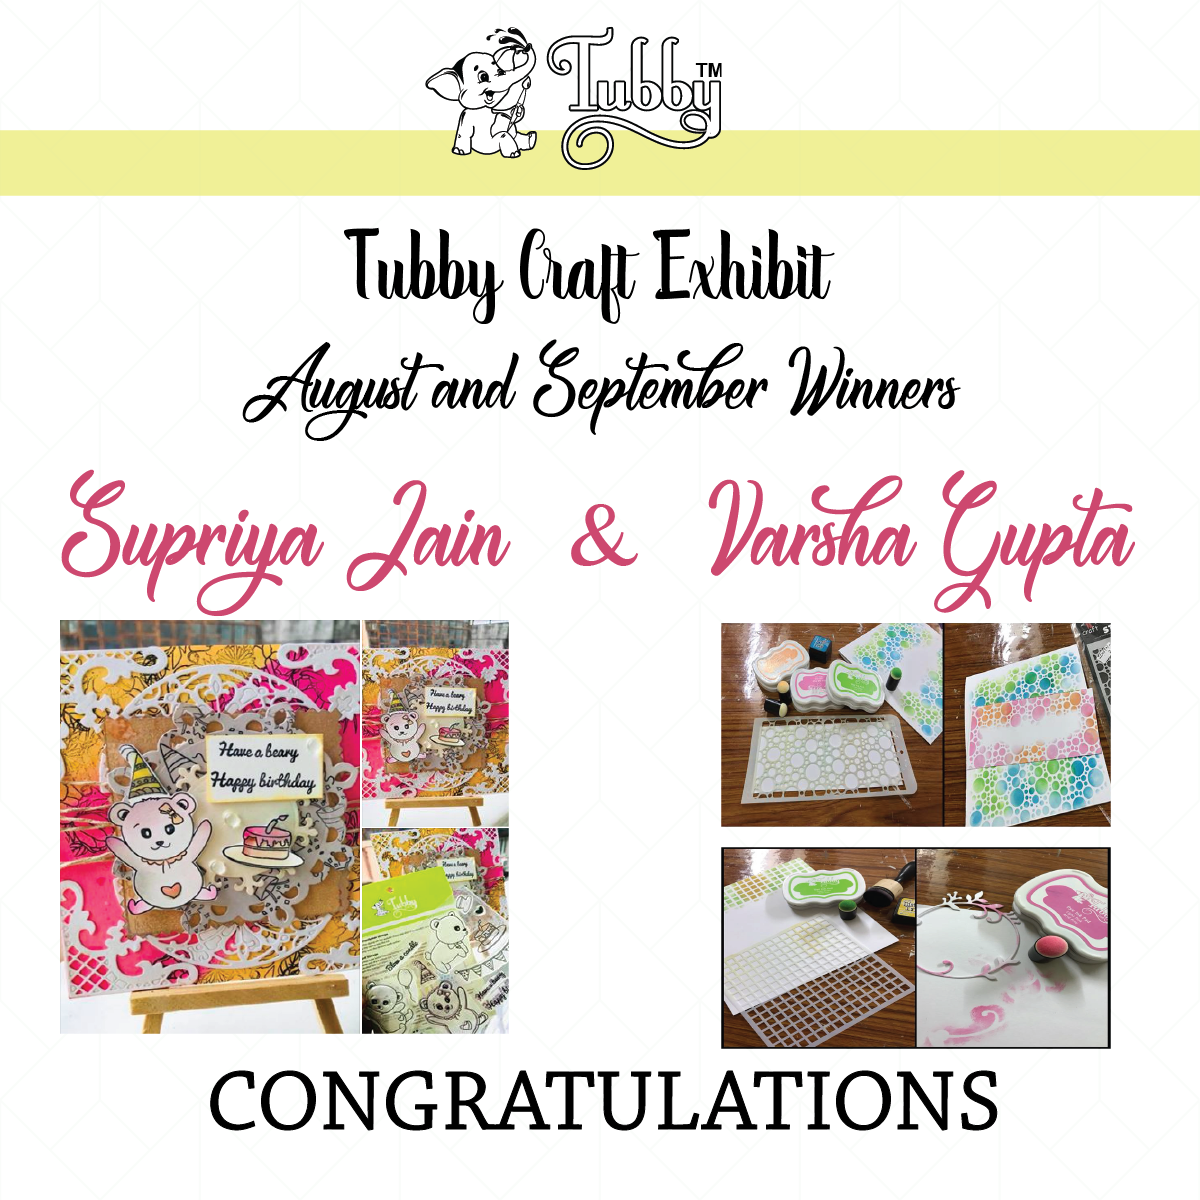 Tubby craft exhibition winner